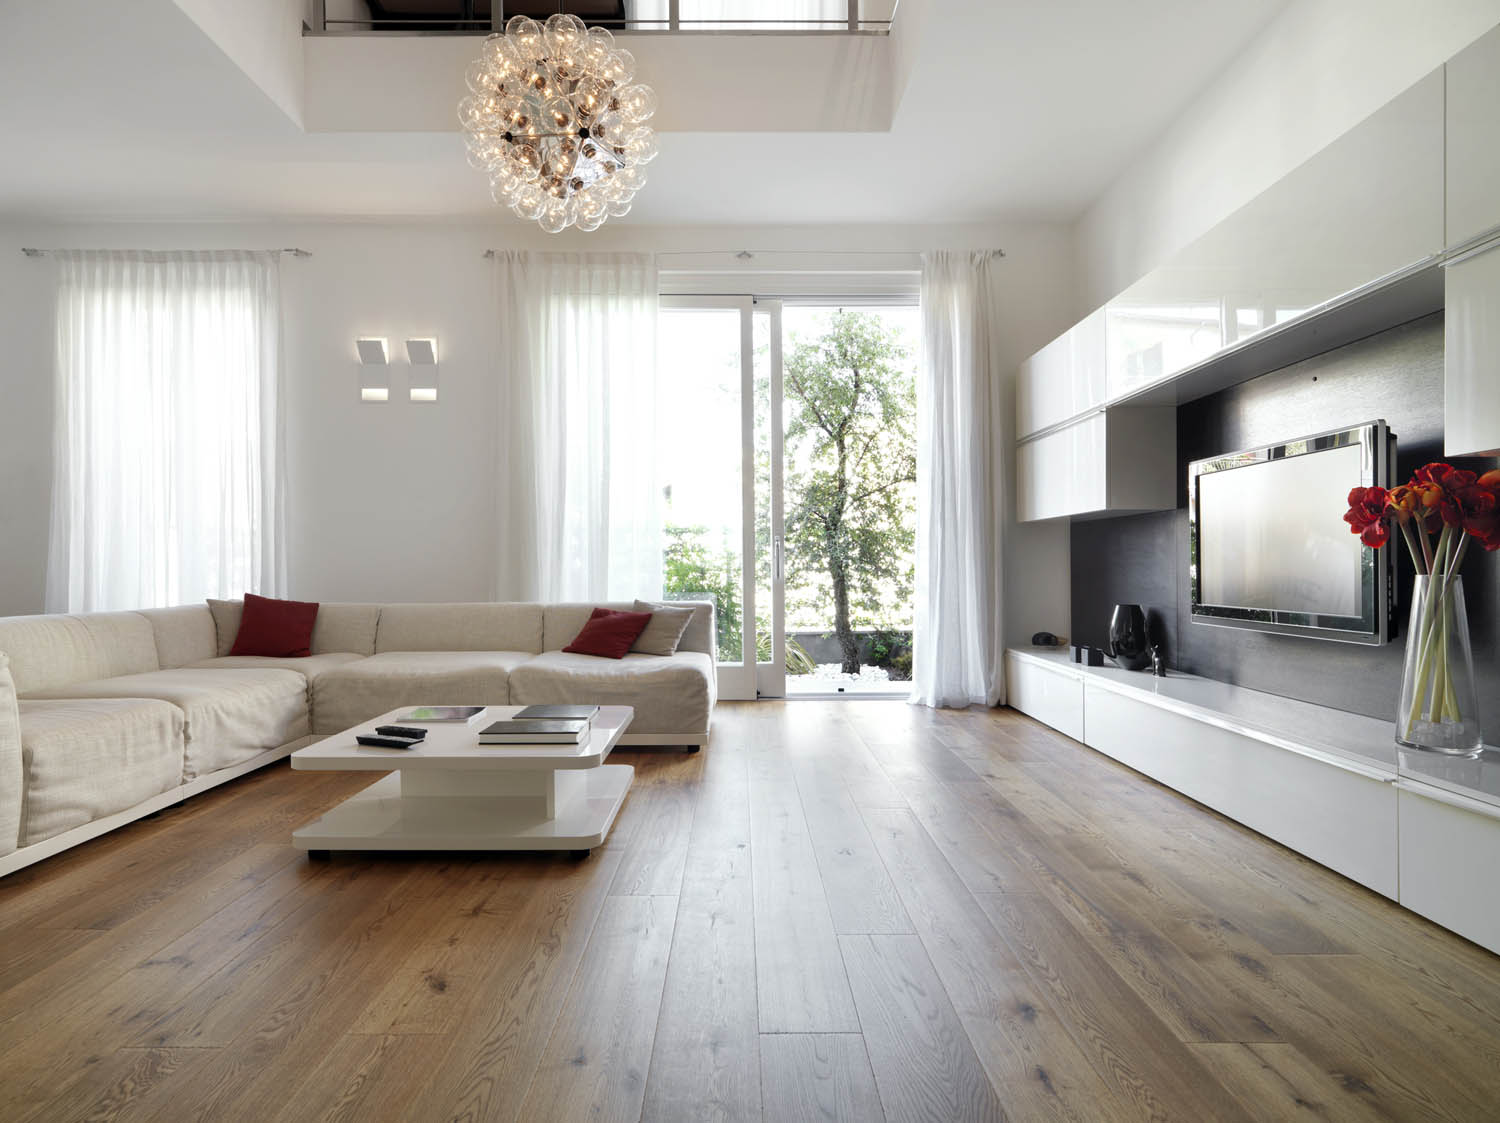 Hardwood Floors & Installation - Get a Free In-Home Estimate in OC